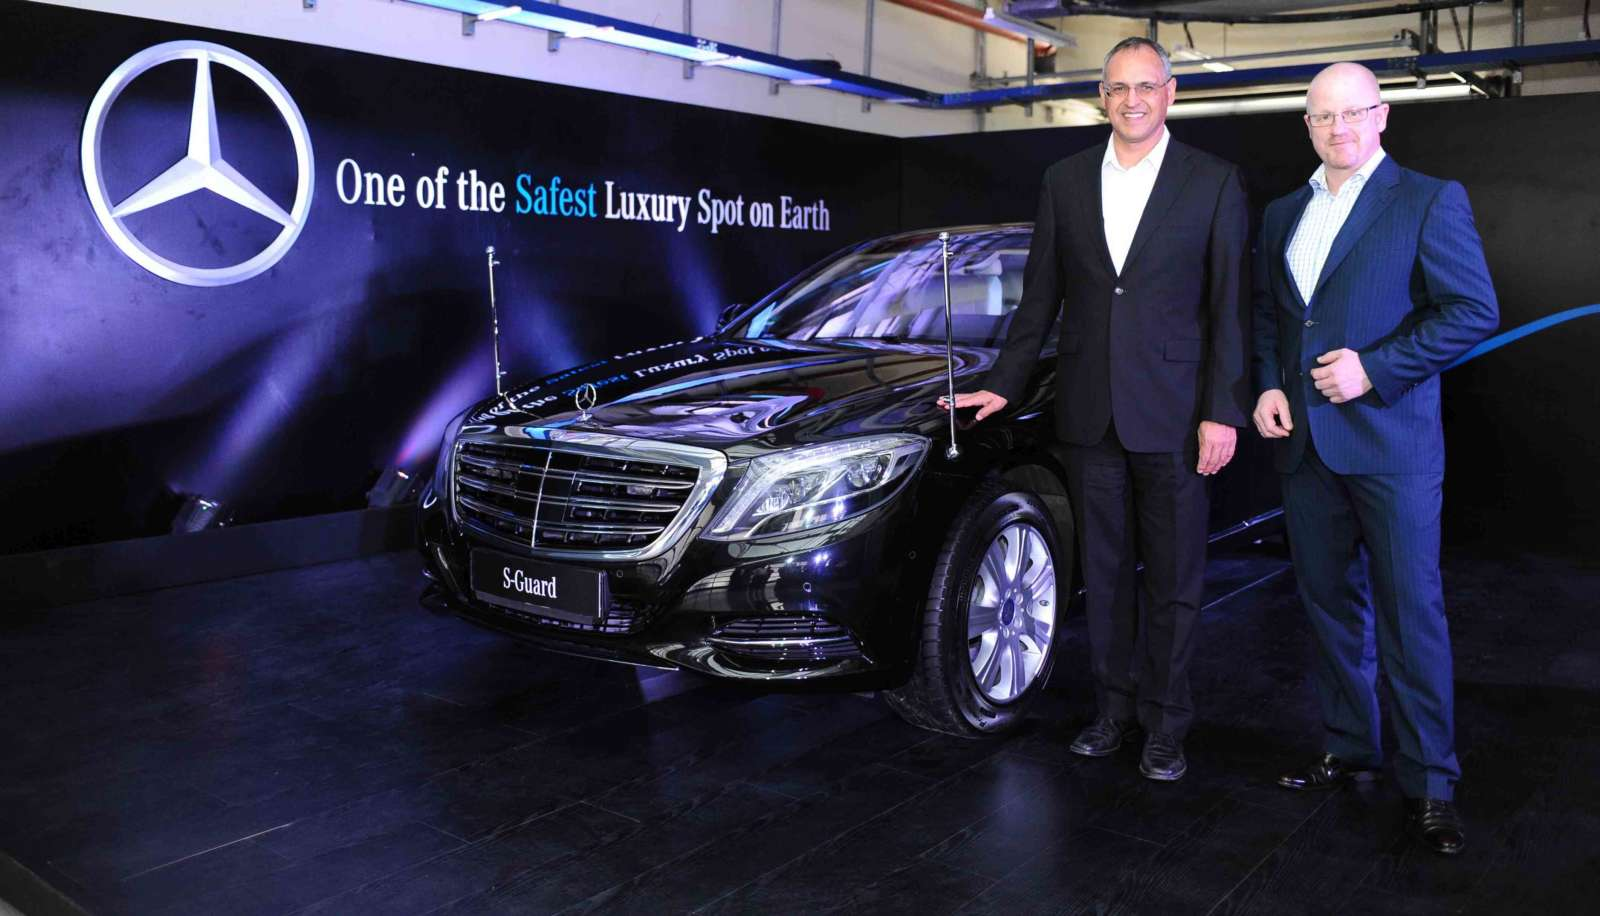 Mercedes benz s guard launched in india priced at inr 8 9 for Mercedes benz salesman